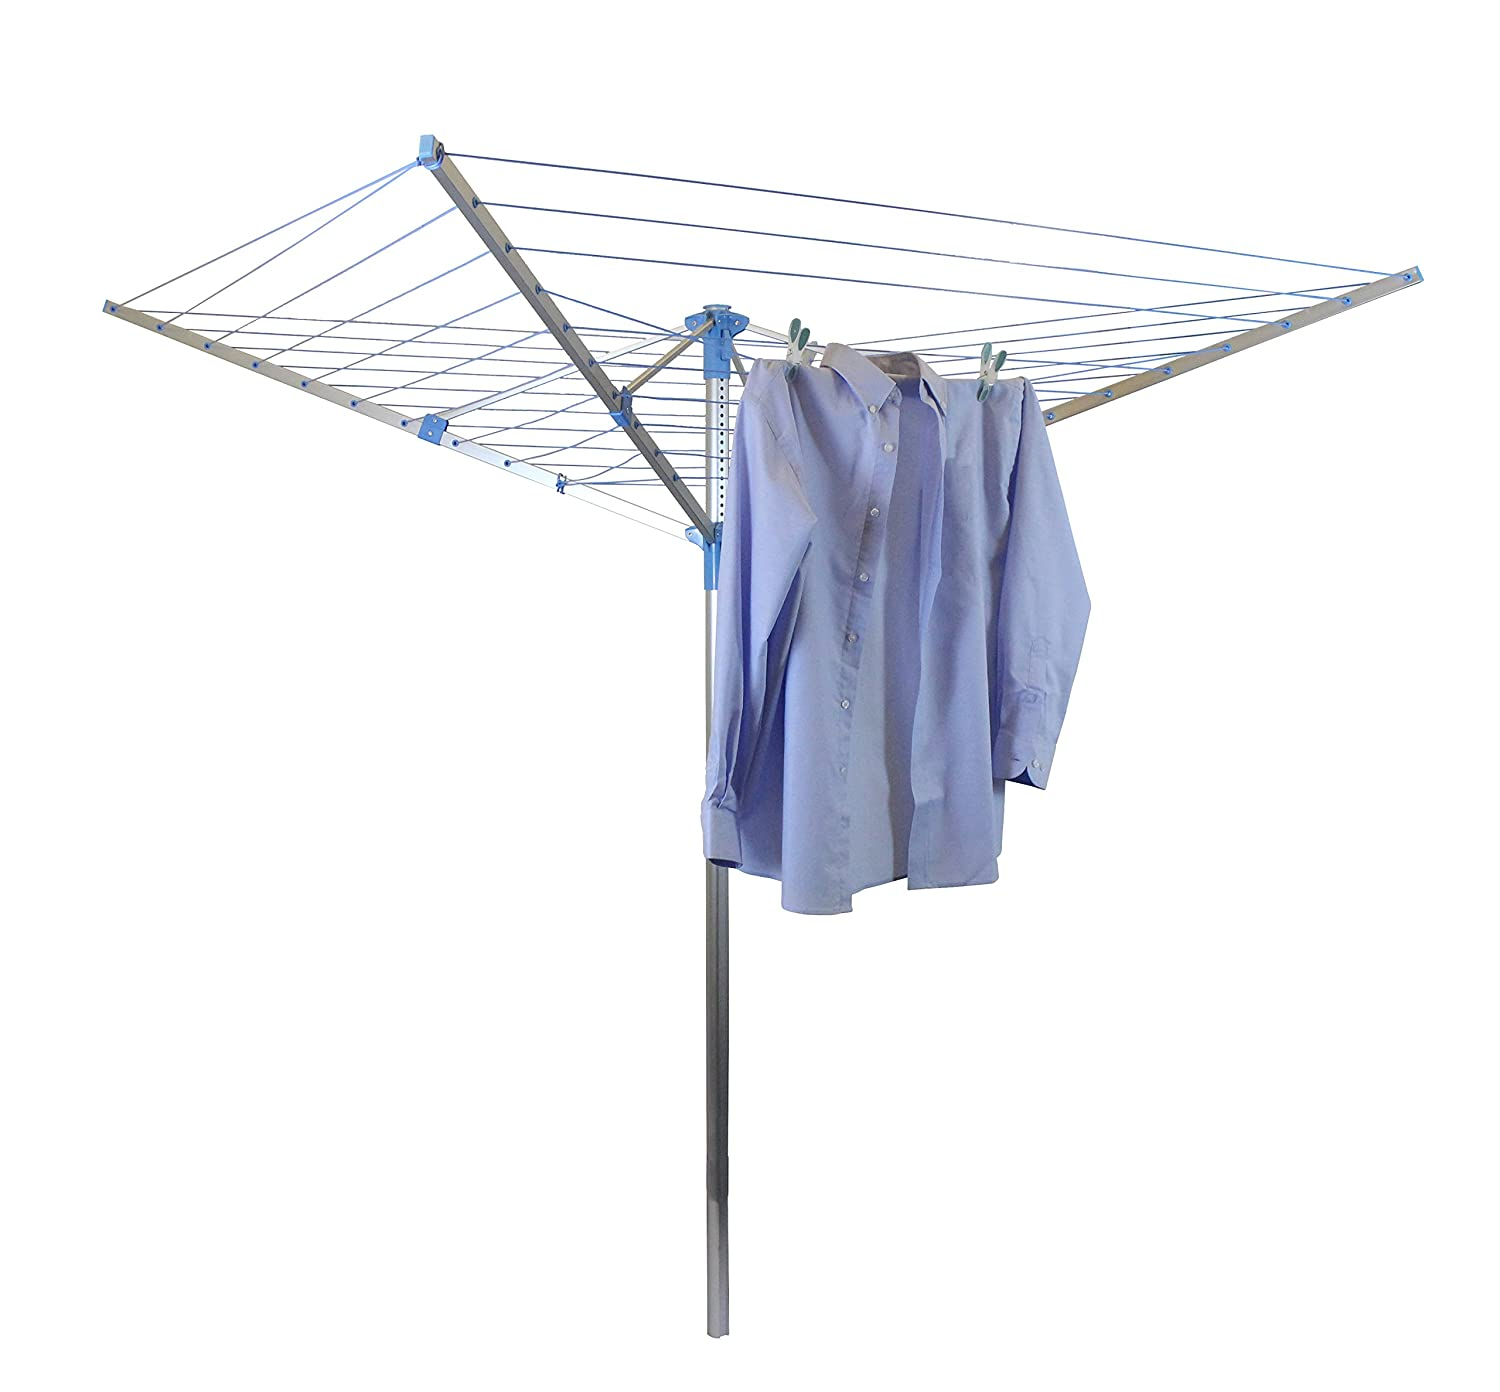 JVL Robust Adjustable Aluminium Four-Arm Rotary Clothes Airer Washing Line Drier, Blue, 40 m 11-042